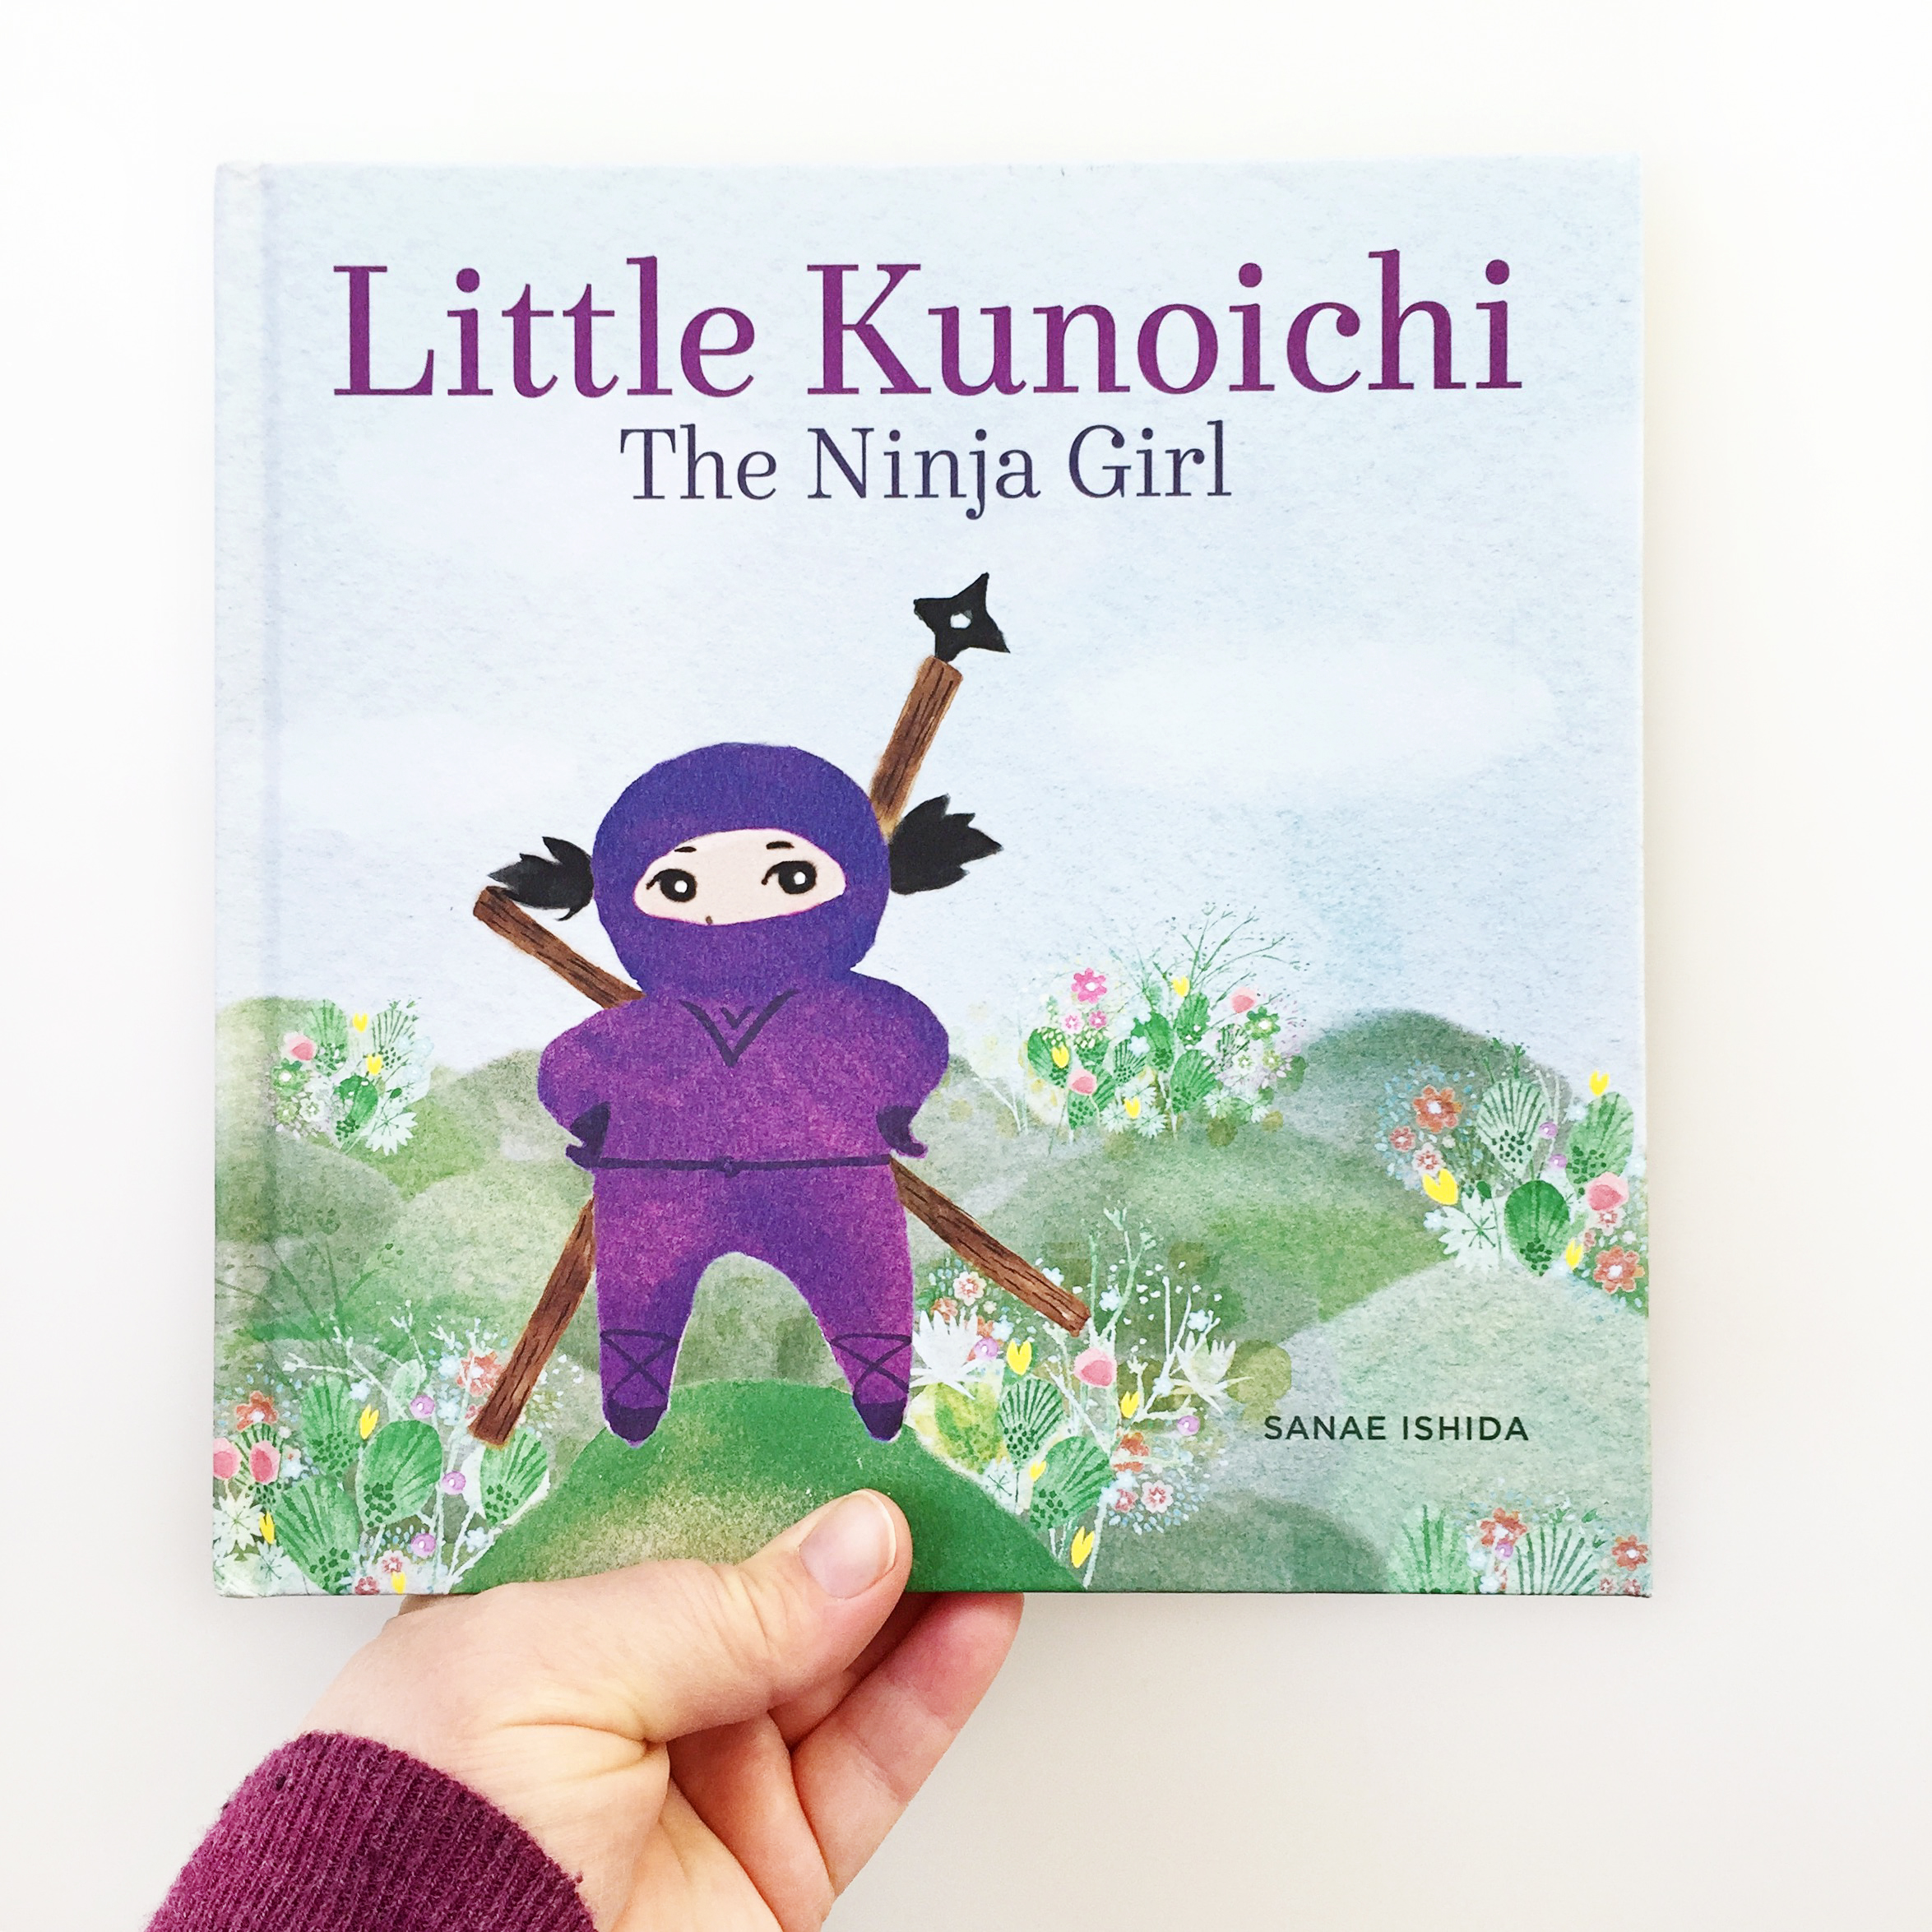 Little Kunoichi | Little Lit Book Series